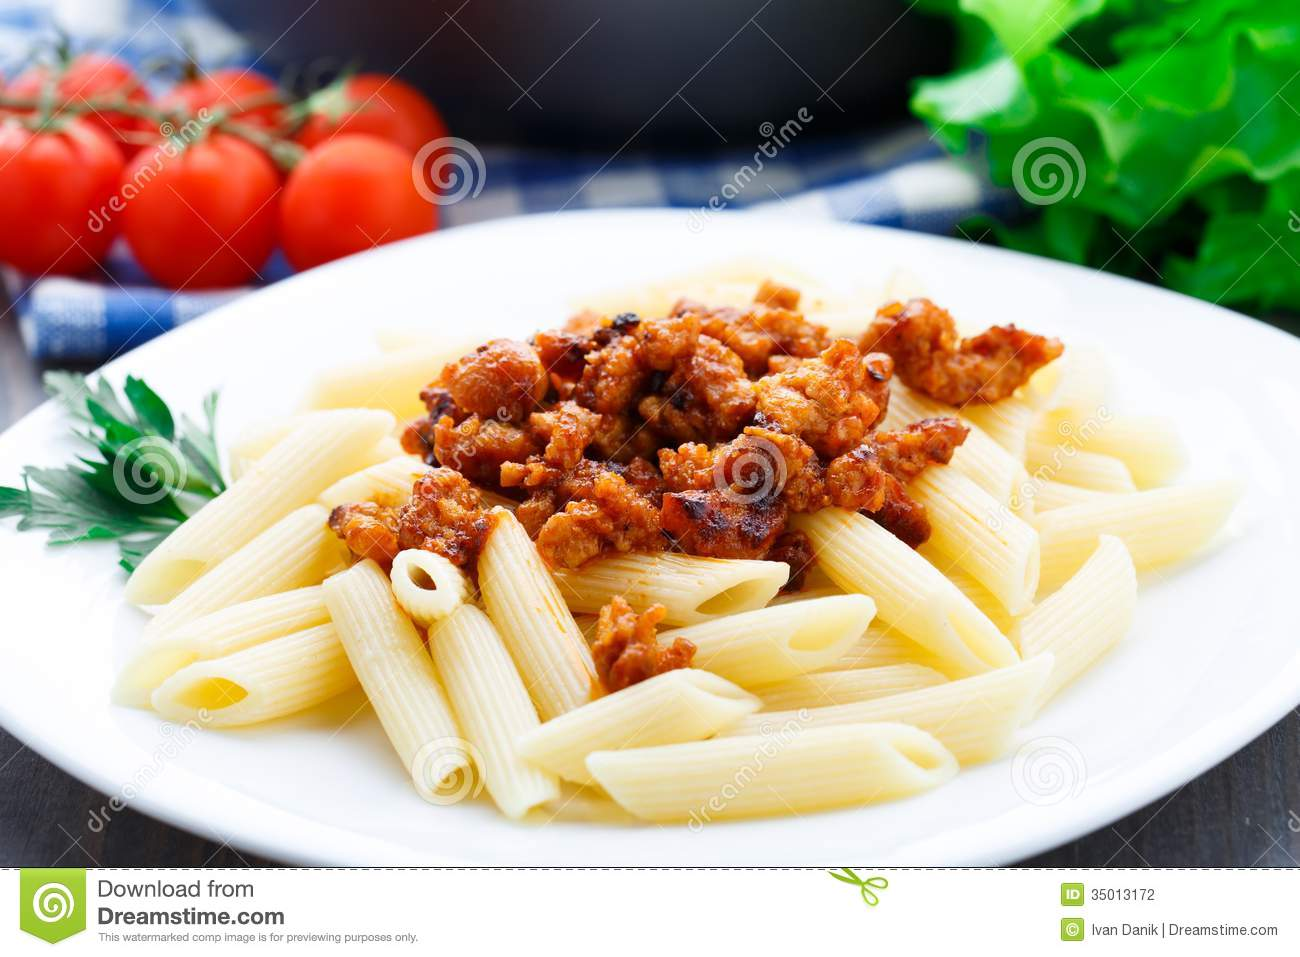 Pasta With Bolognese Sauce Stock Photography - Image: 35013172